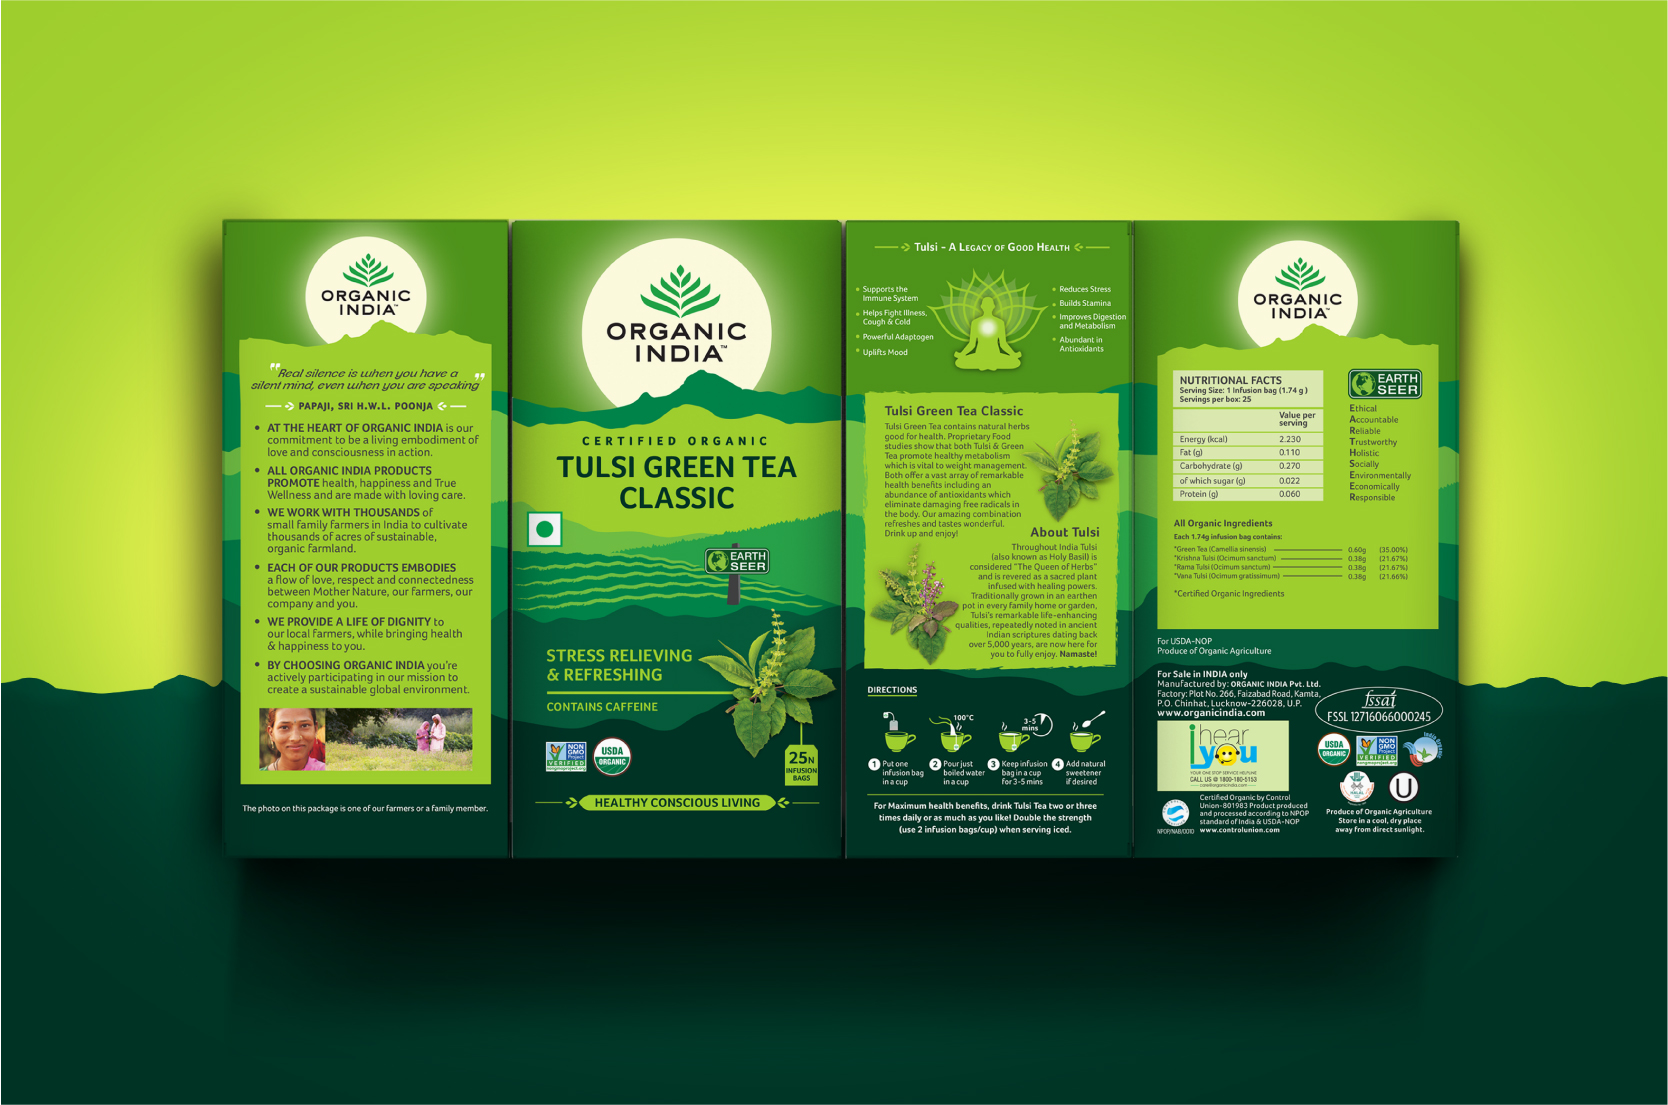 Organic india_Packaging Design_Elephant Design 3.jpg